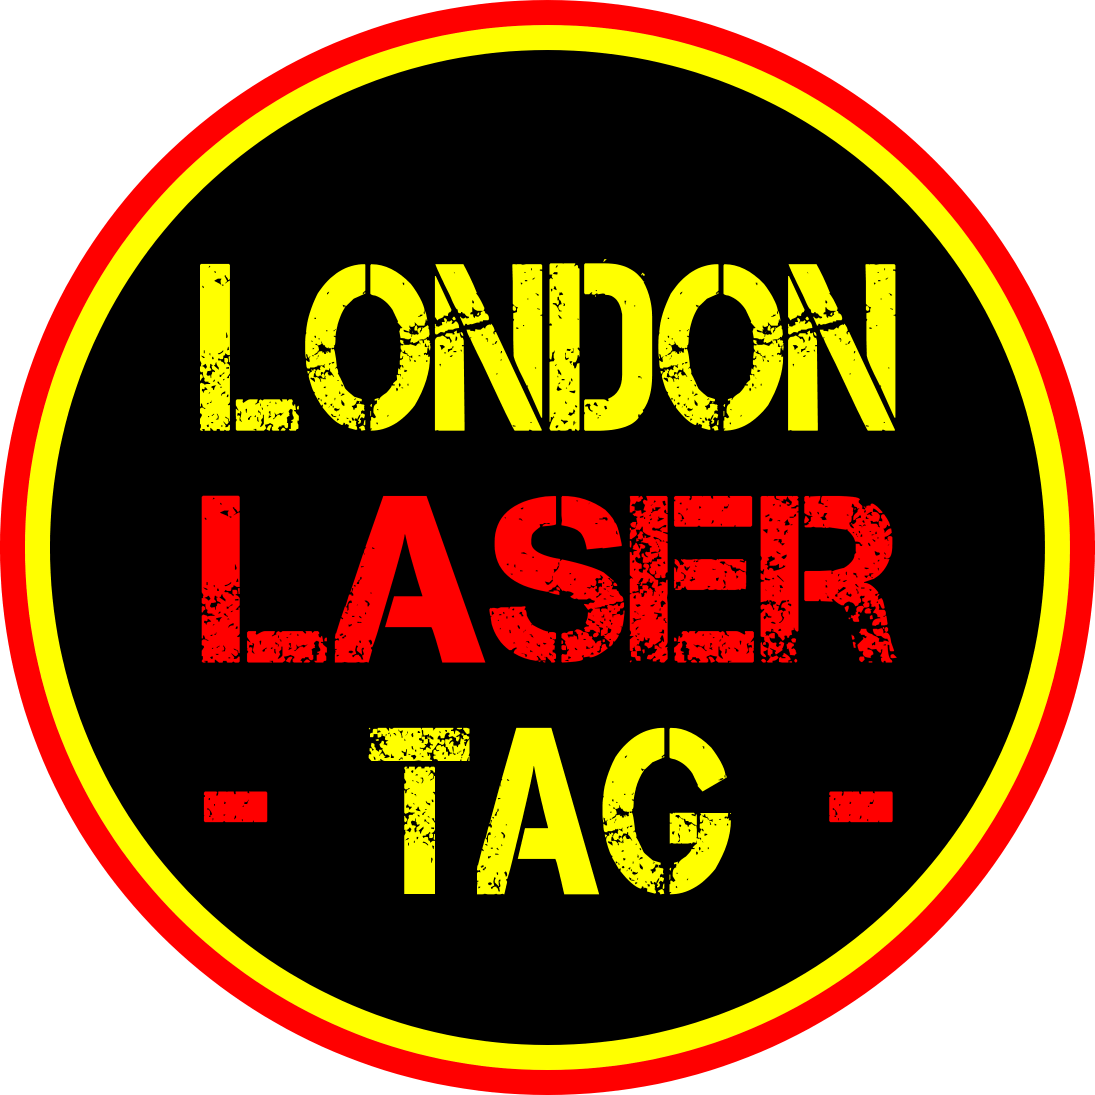 Tooting Bec Laser-Tag party